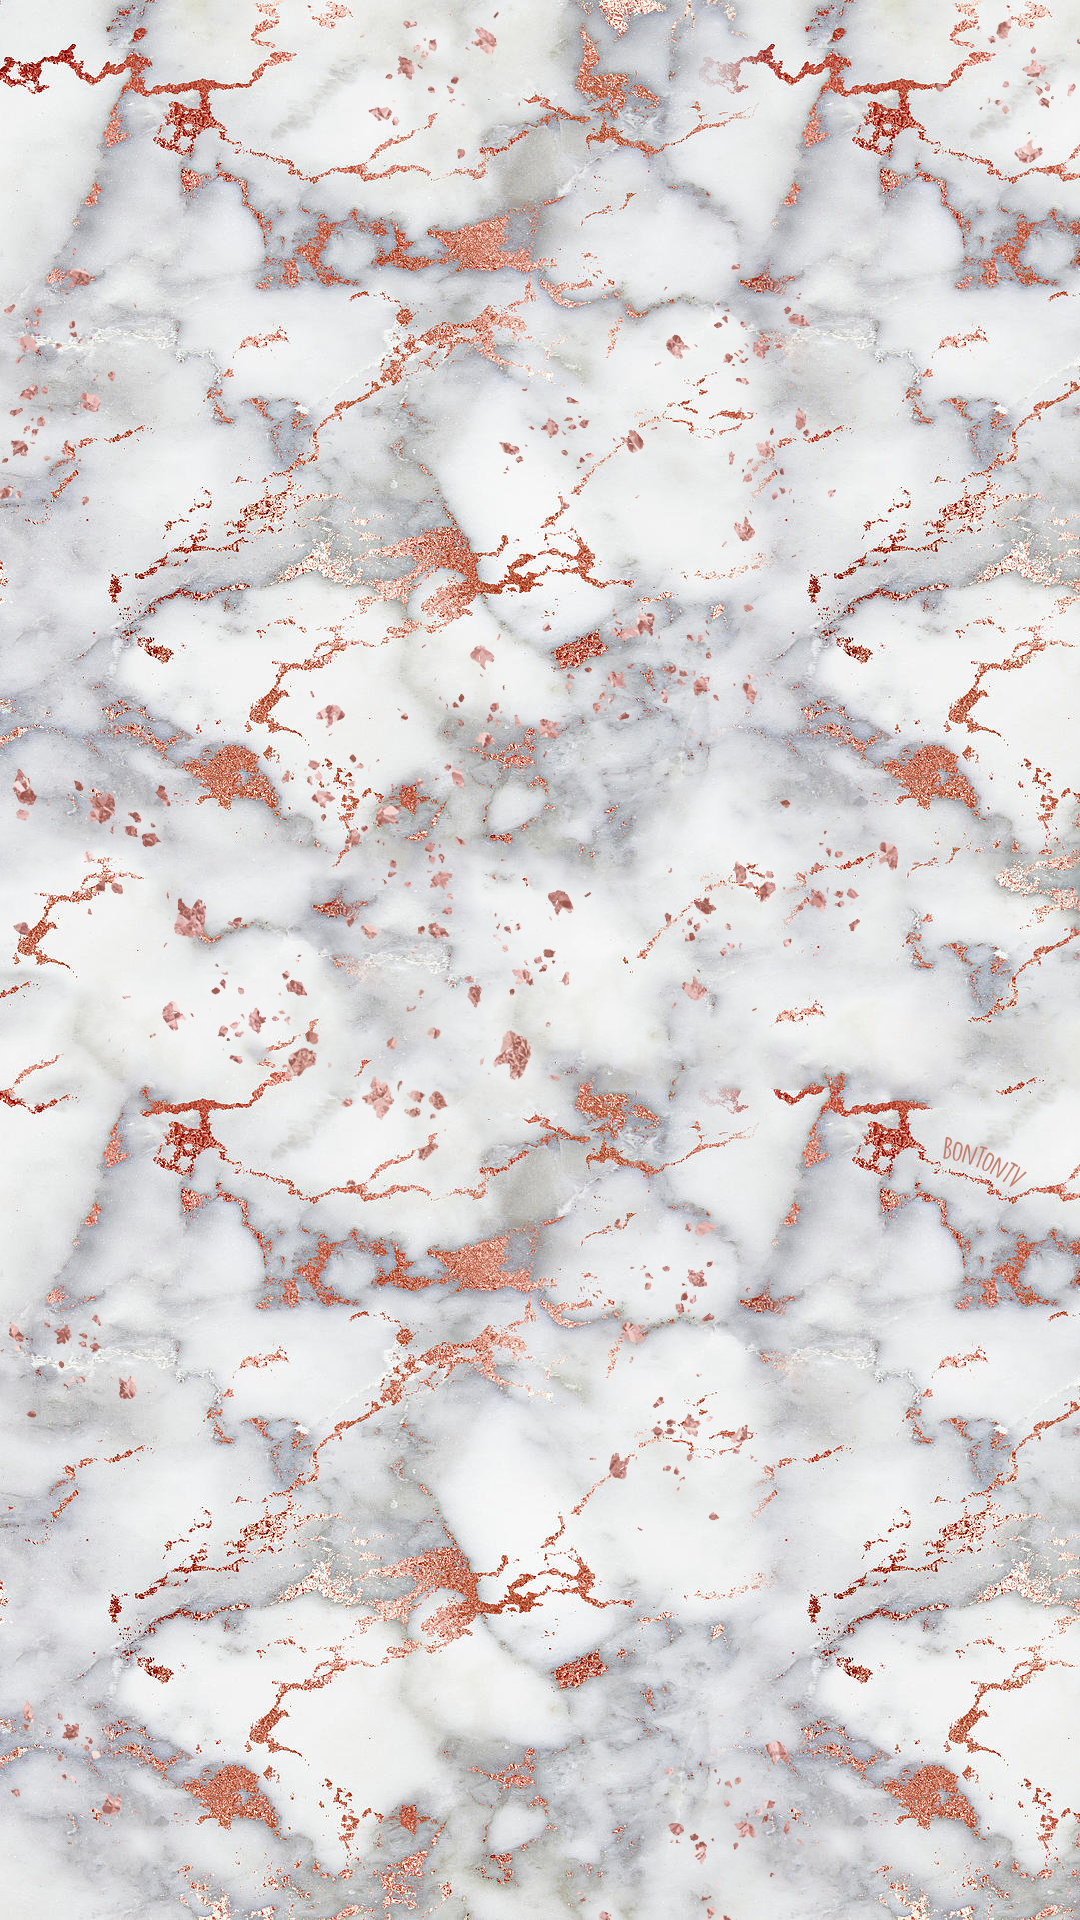 Rose Gold Marble Wallpaper For Phone